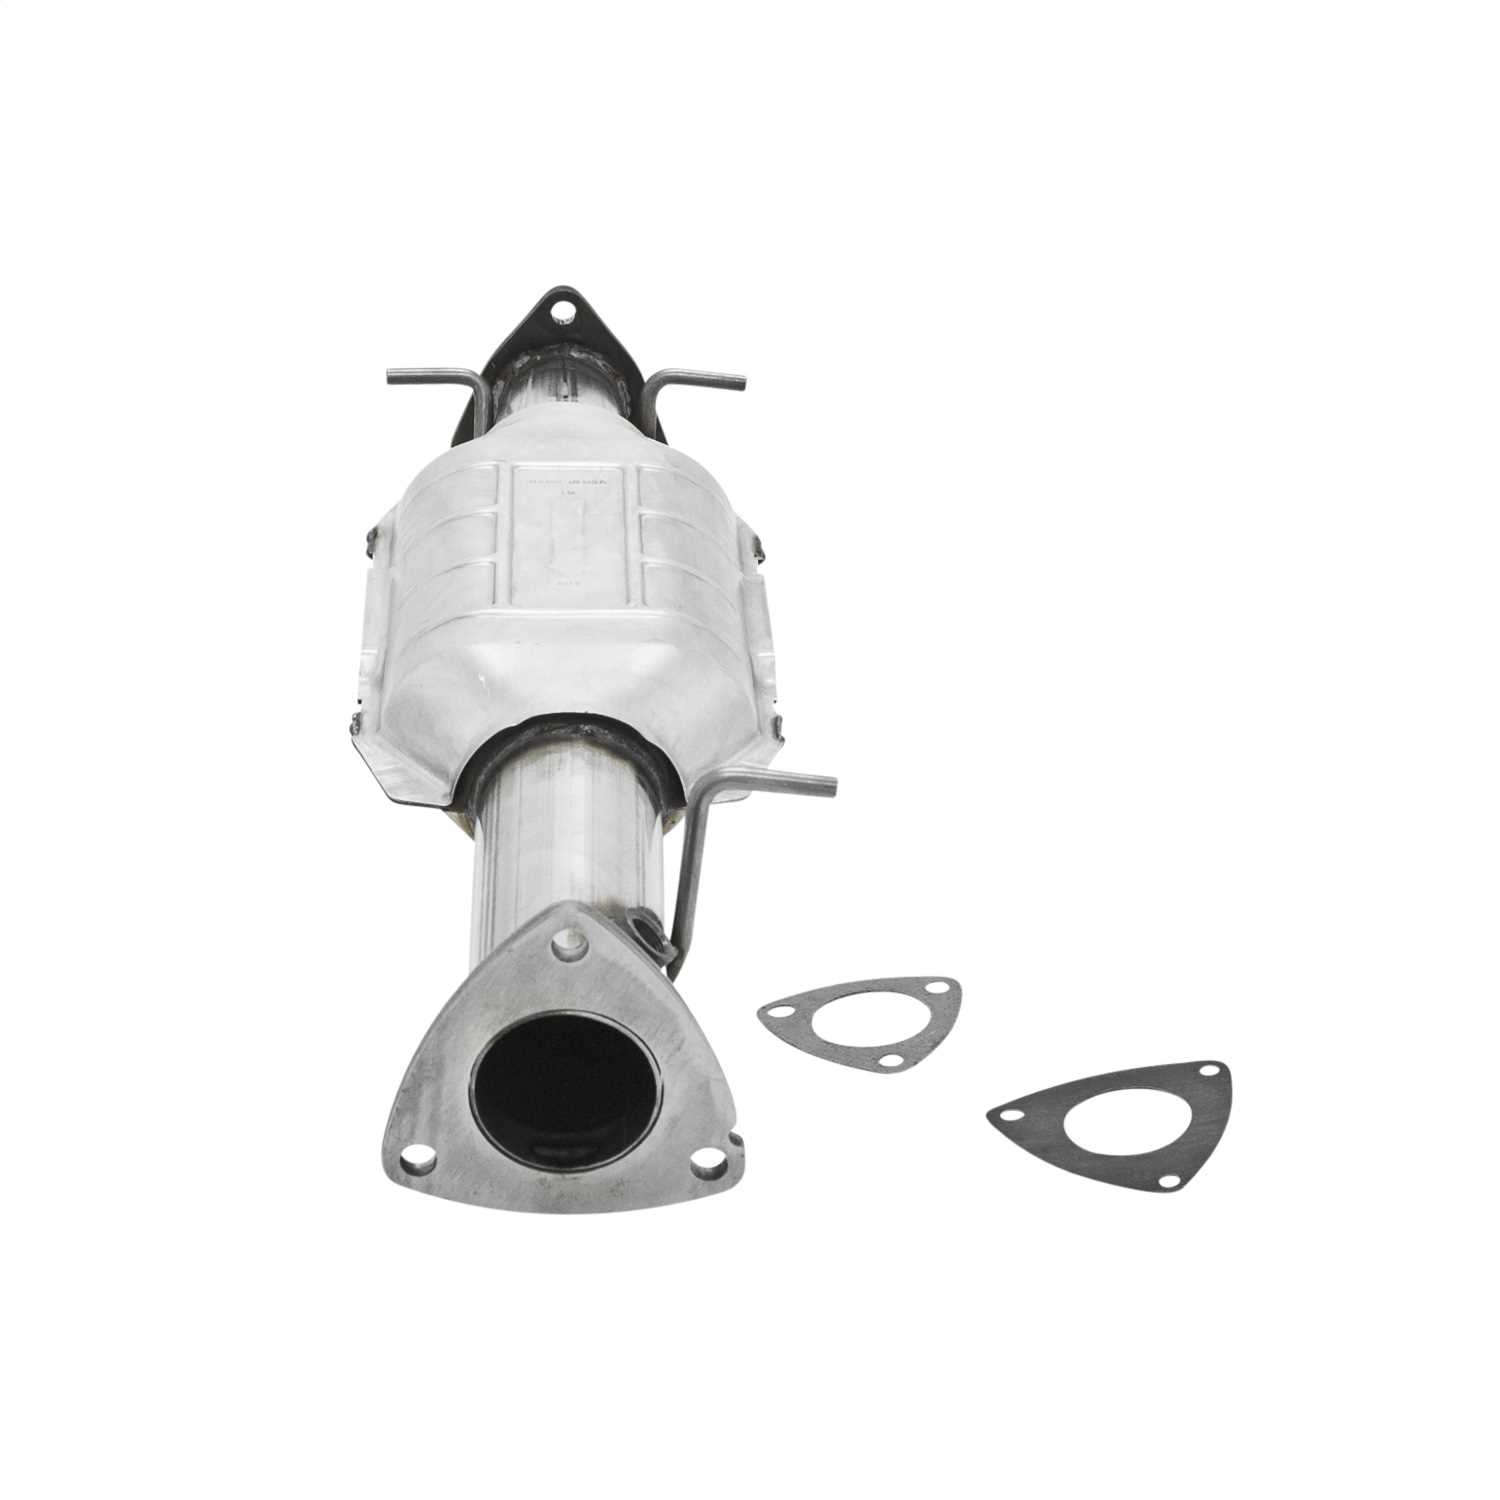 2010027 Flowmaster 49 State Catalytic Converters Direct Fit Catalytic Converter